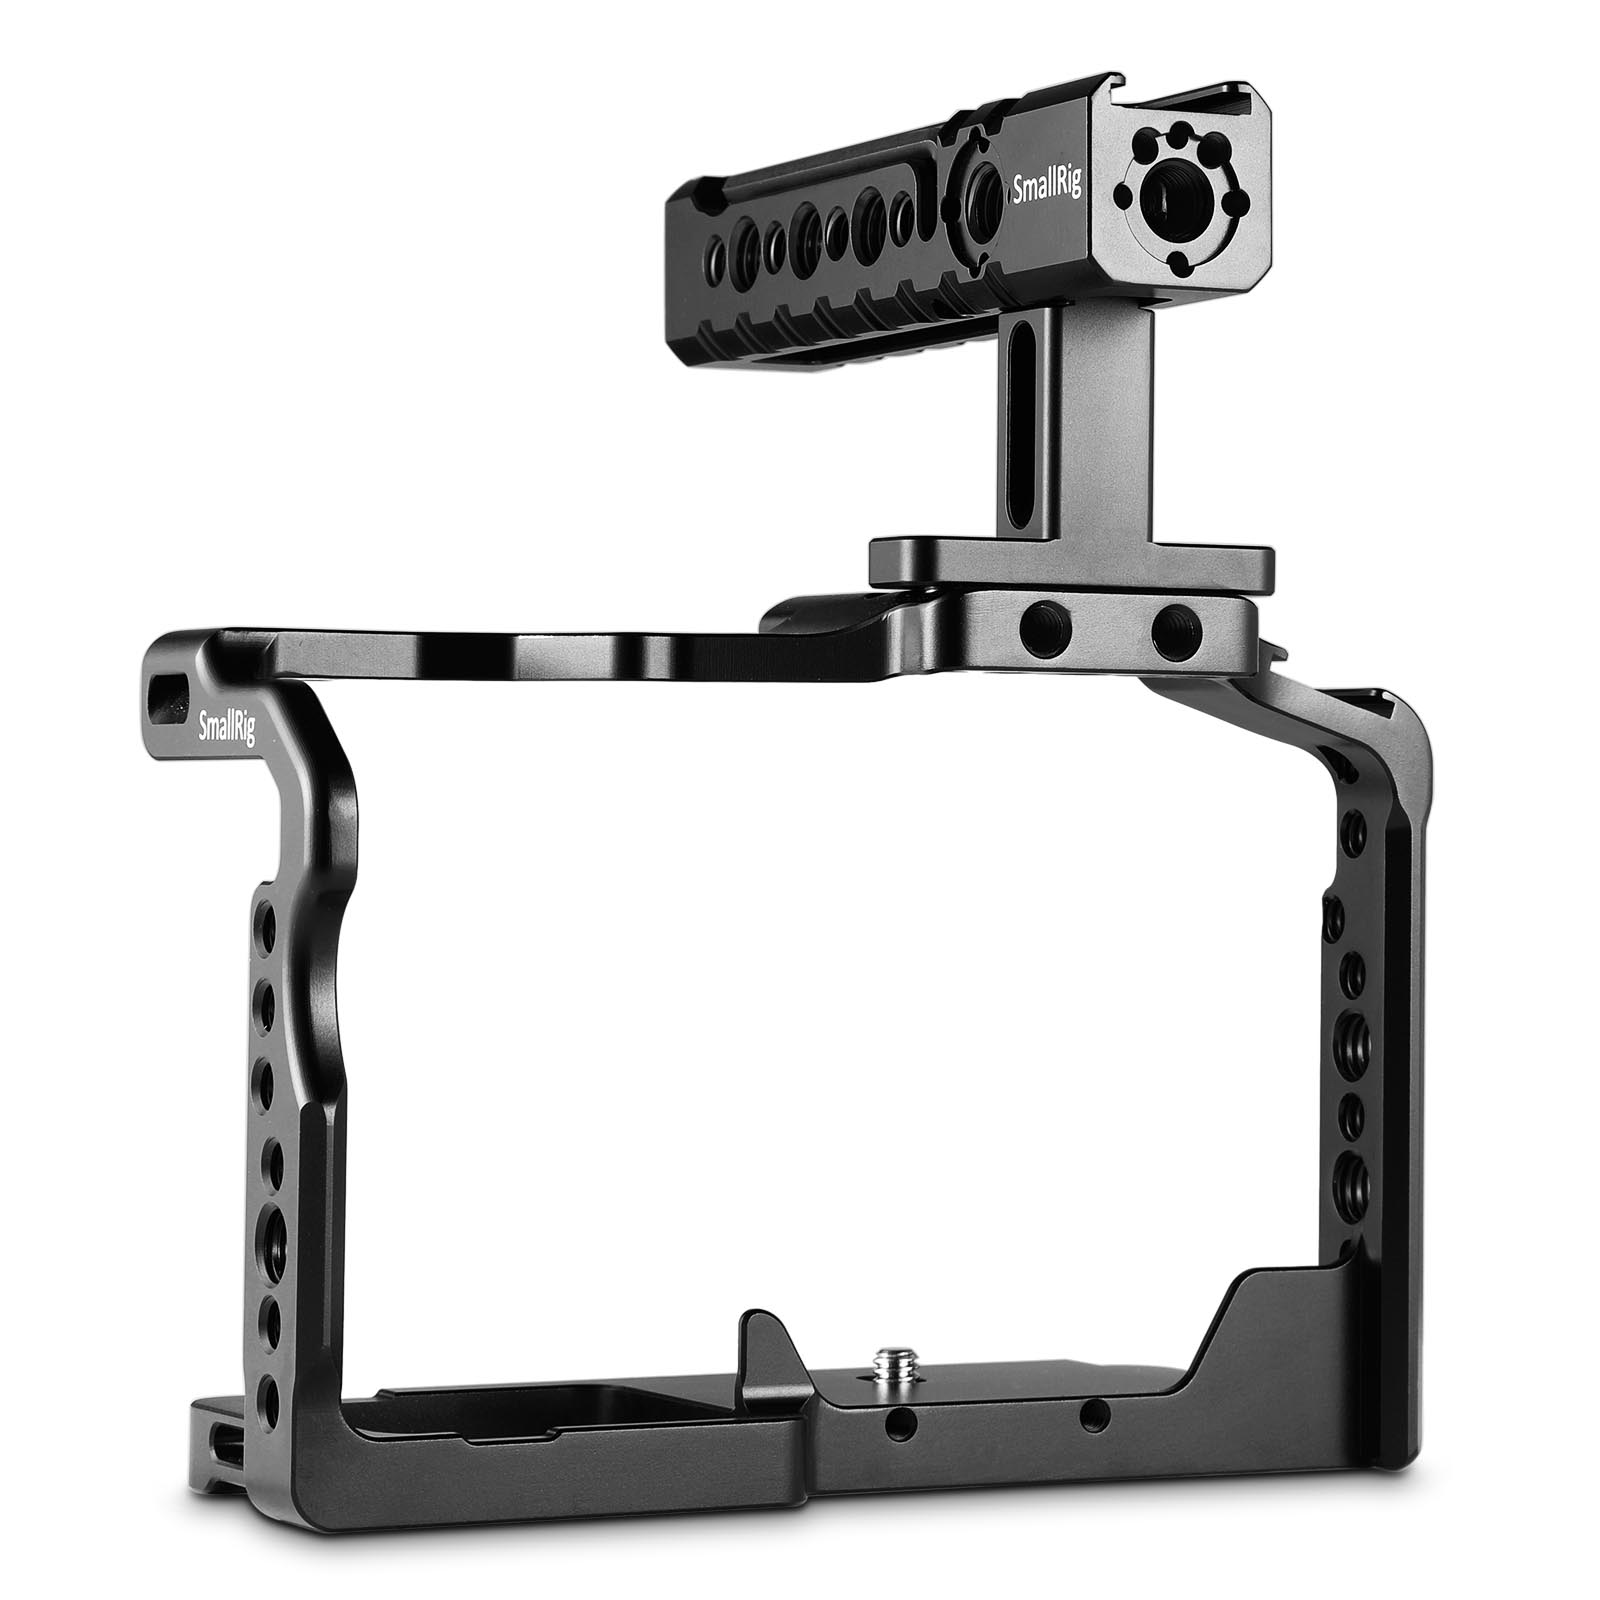 SmallRig Camera GH5 Dual Aluminum Cage kit For Panasonic Lumix GH5 / GH5S Form Fitting Cage with Top Handle Grip  2050